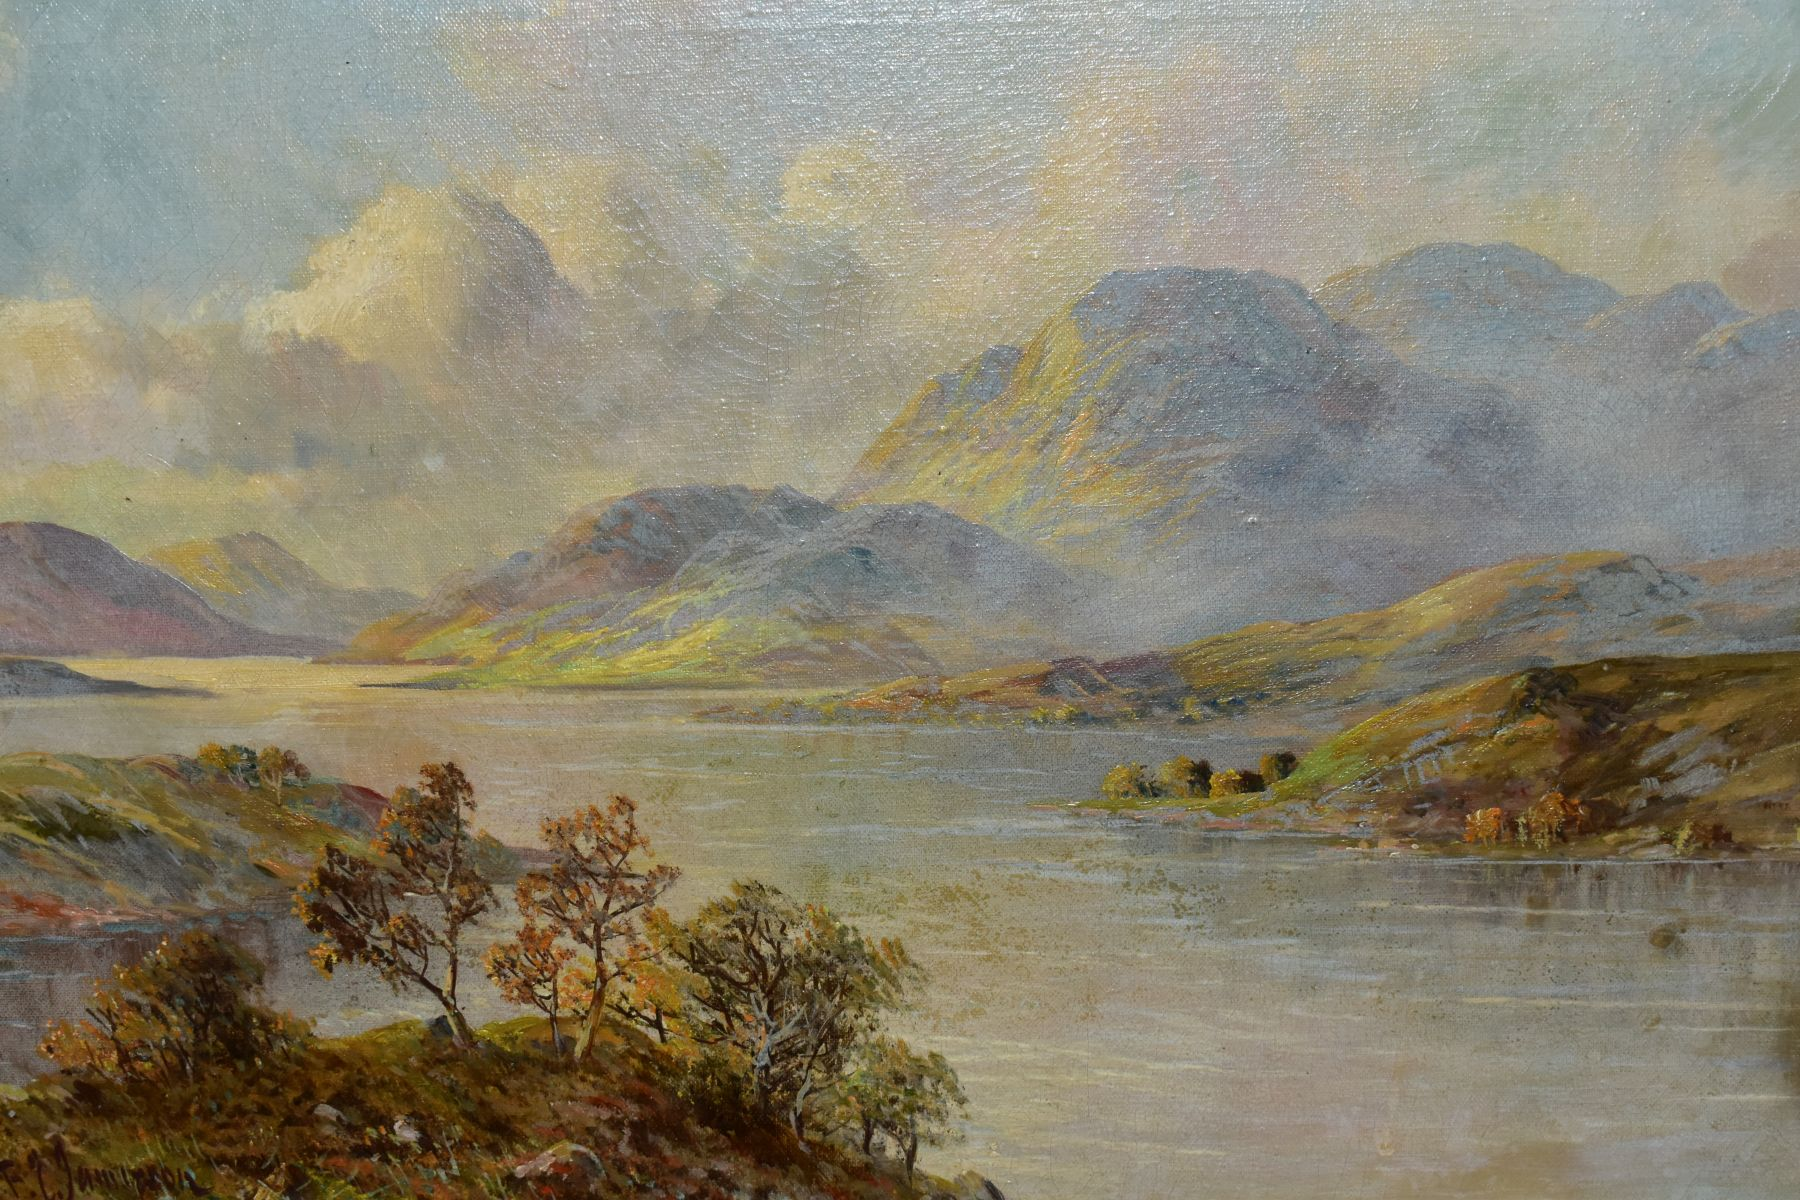 FRANCIS E.JAMIESON (1895-1950) 'LOCH KATRINE', a Scottish landscape, a large body of water to the - Image 2 of 4